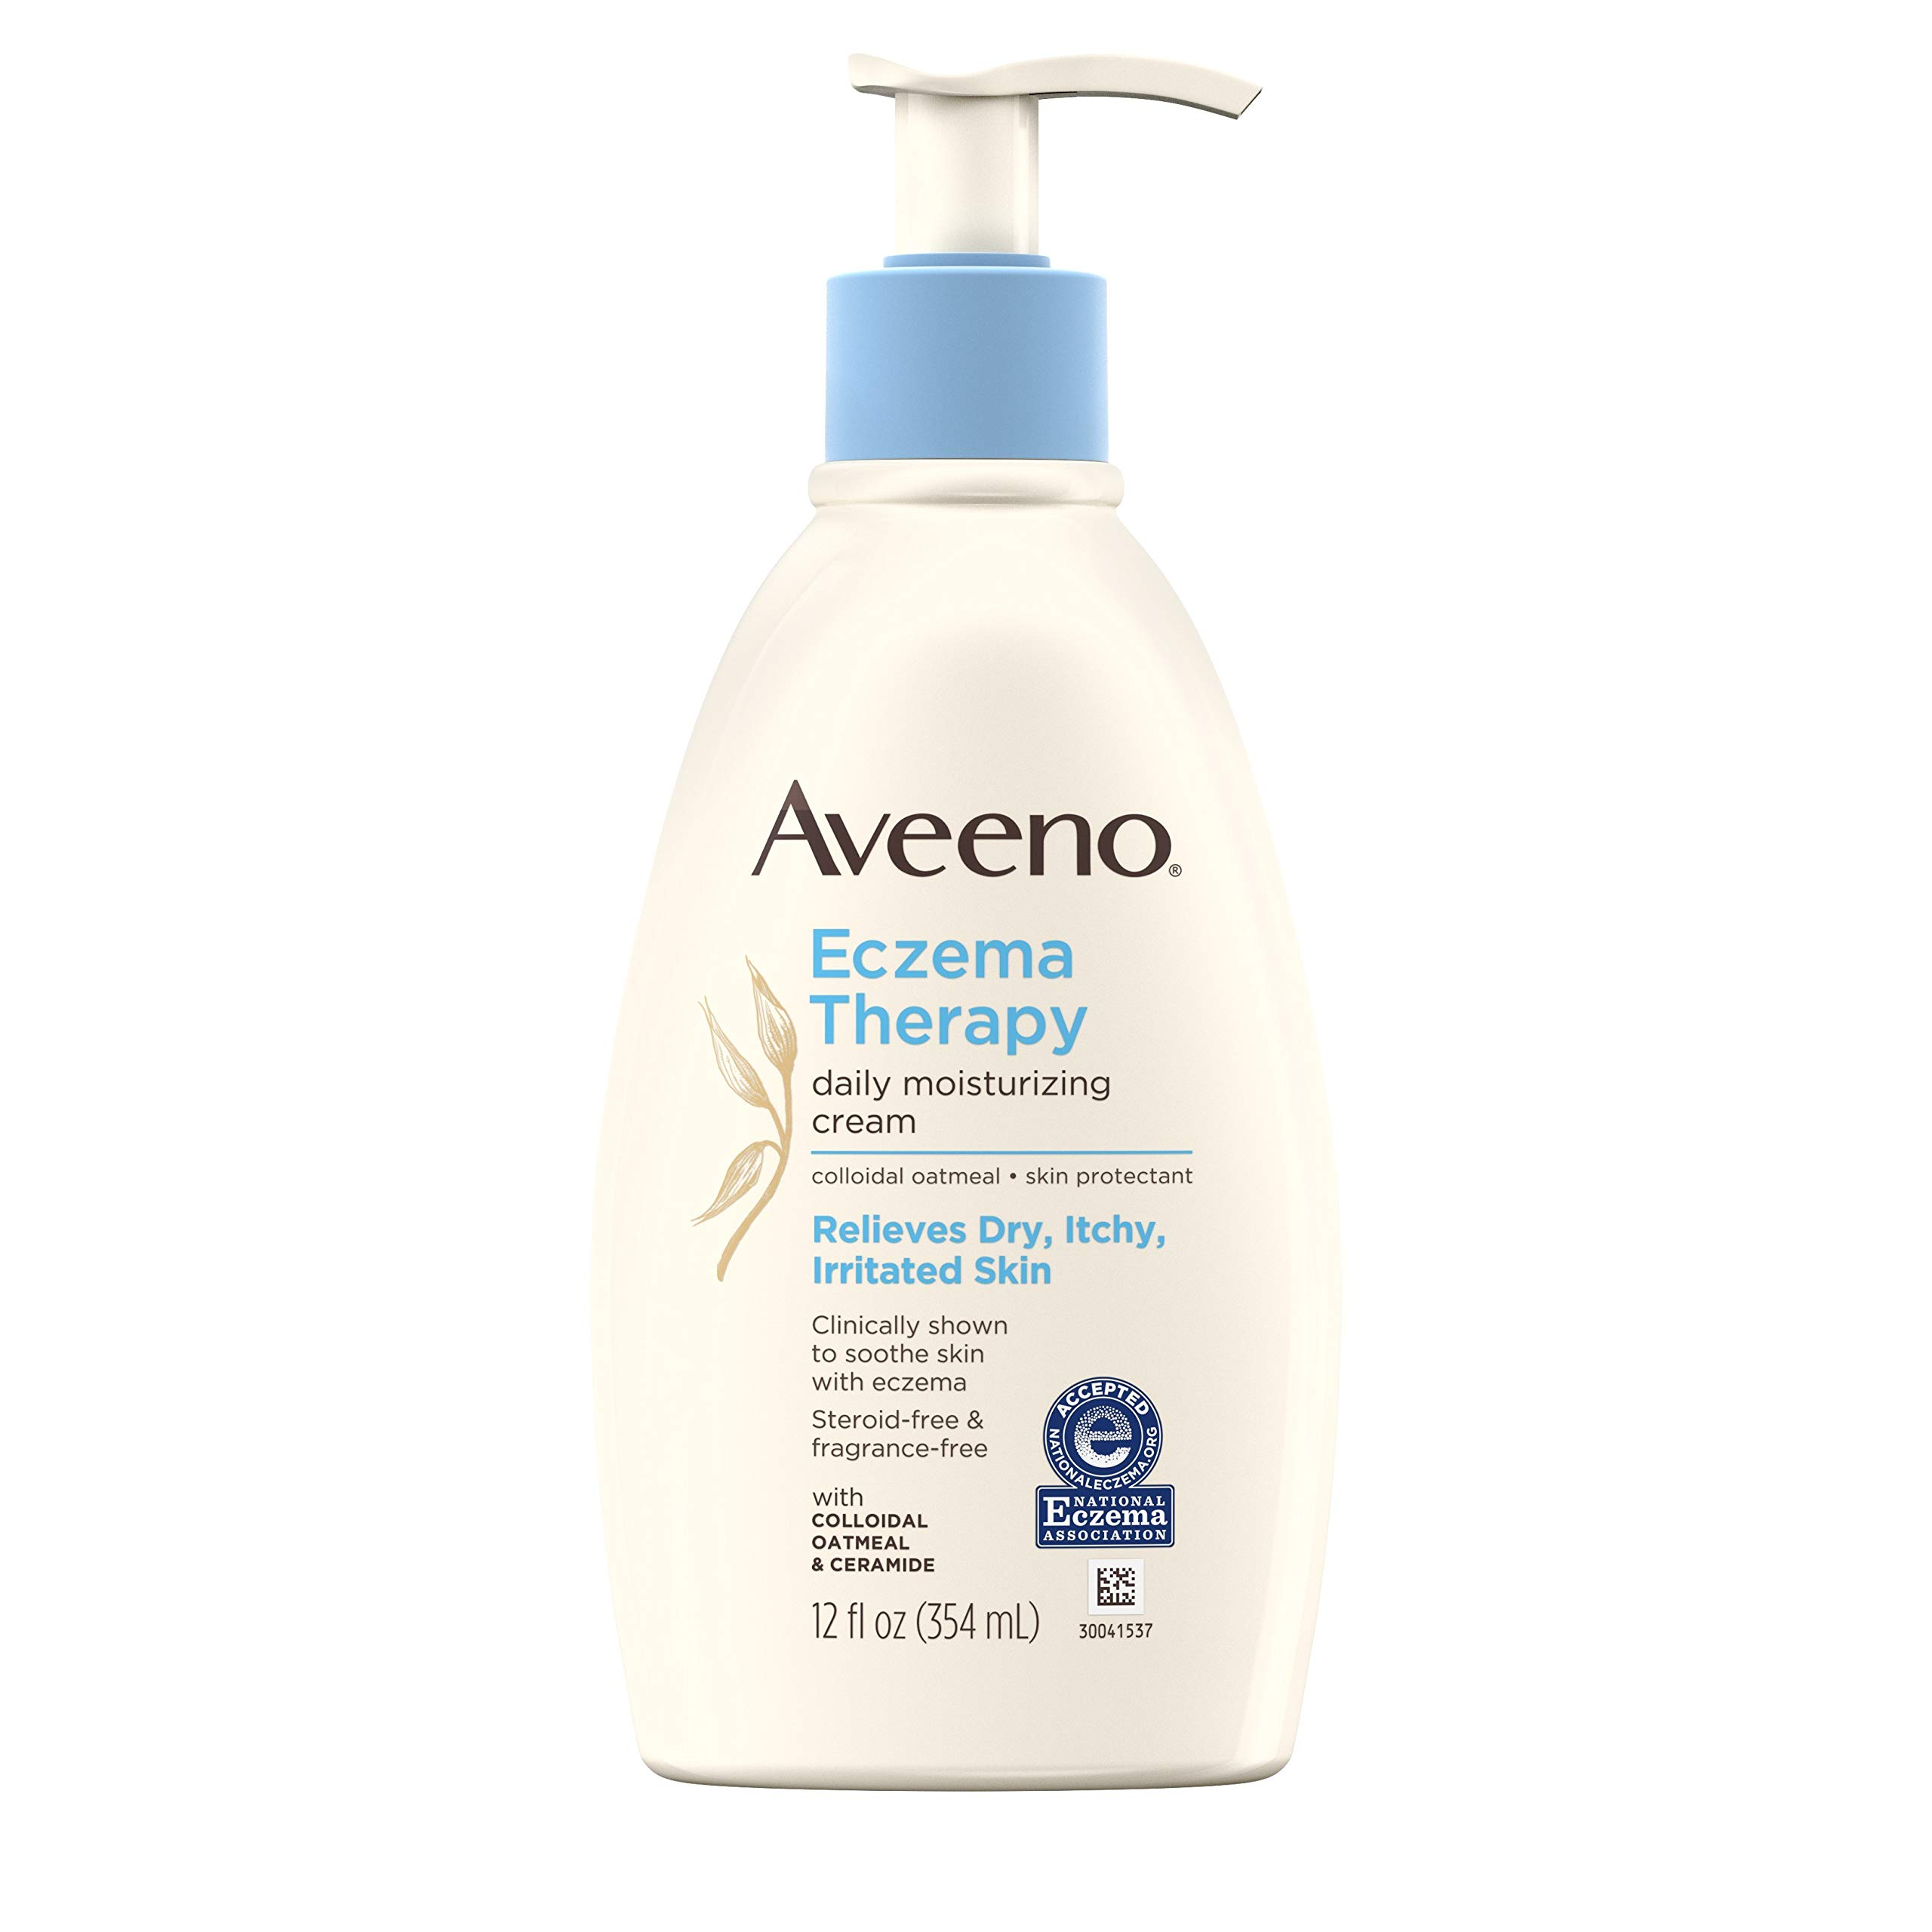 Aveeno Eczema Therapy Daily Moisturizing Cream for Sensitive Skin, Soothing Lotion with Colloidal Oatmeal for Dry, Itchy, and Irritated Skin, Steroid-Free and Fragrance-Free, 12 fl. oz by Aveeno